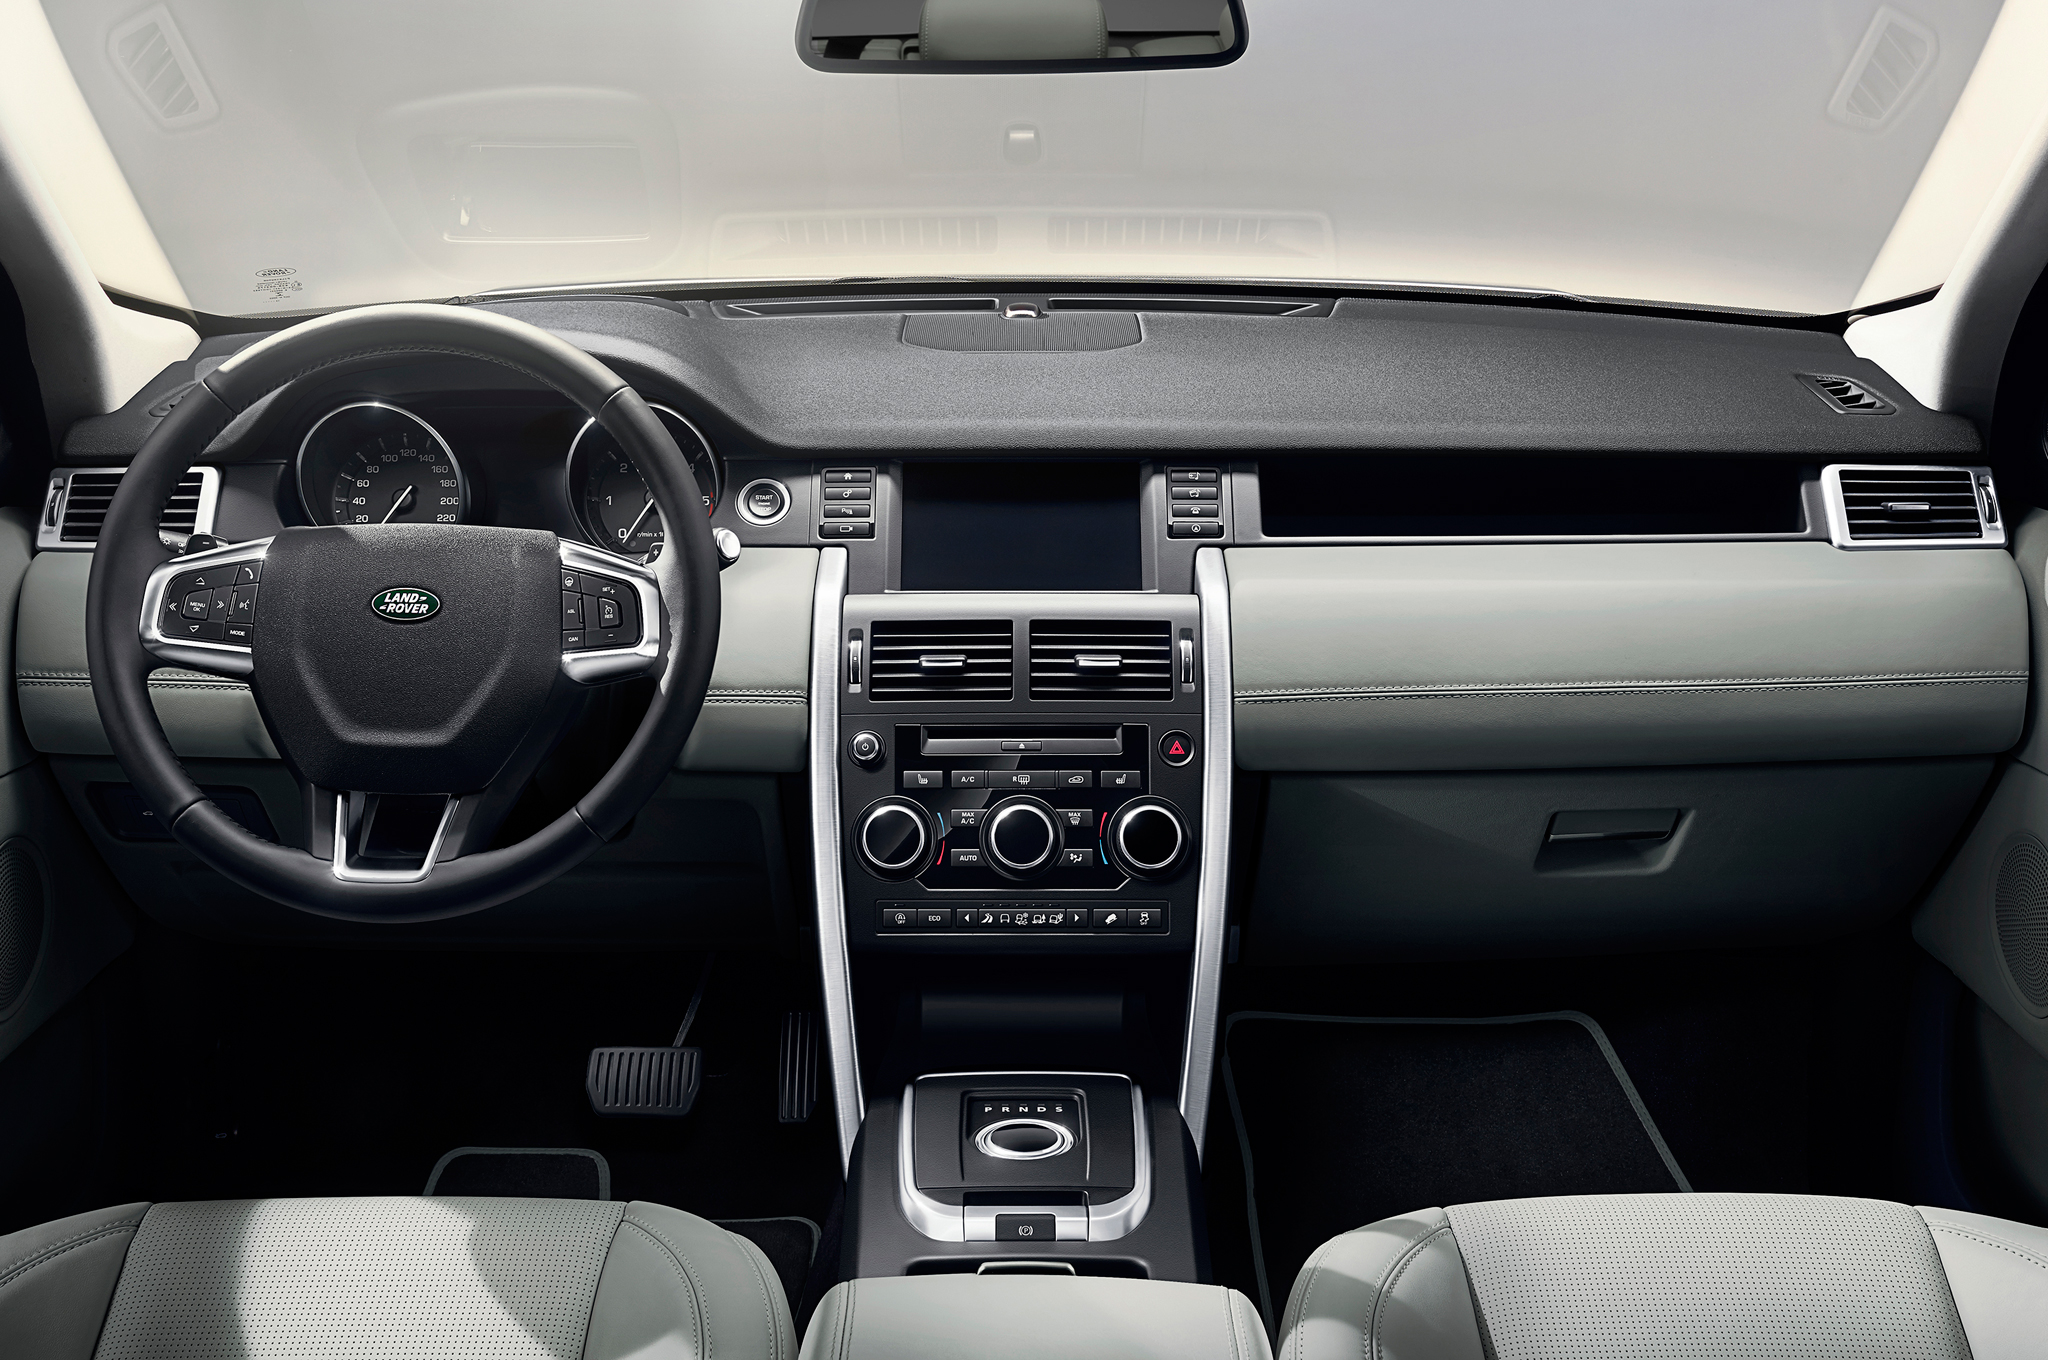 amazing-design-of-the-black-and-grey-dash-ideas-with-grey-seats-as-the-land-rover-discovery-sport-2015-interior